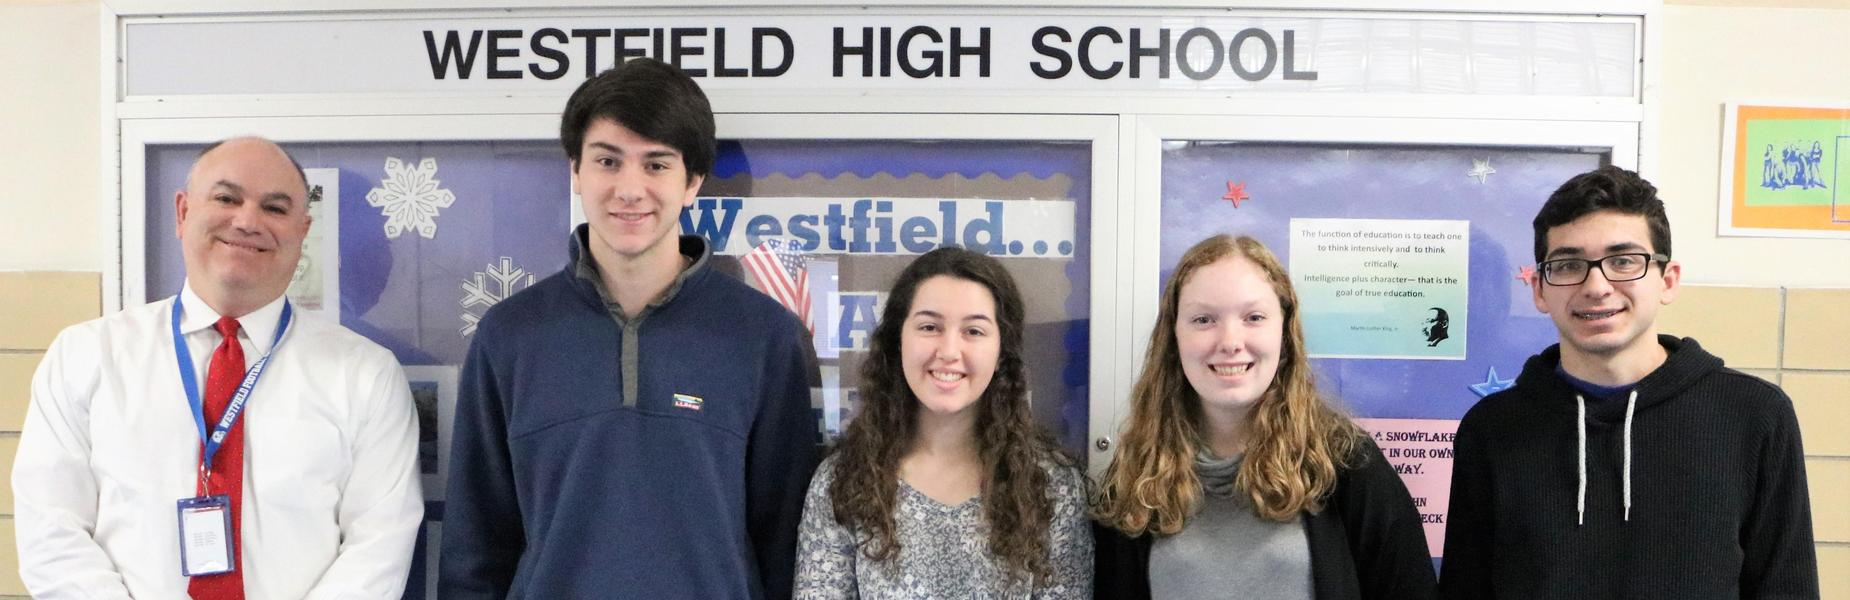 Photo of February 2019 ACT perfect scorers: Henry Meiselman (Science & STEM), Jacob Rock (English & Reading), Brianna Weber (Reading) and Abbey Zidel (English), pictured here with Westfield High School assistant principal James DeSarno.